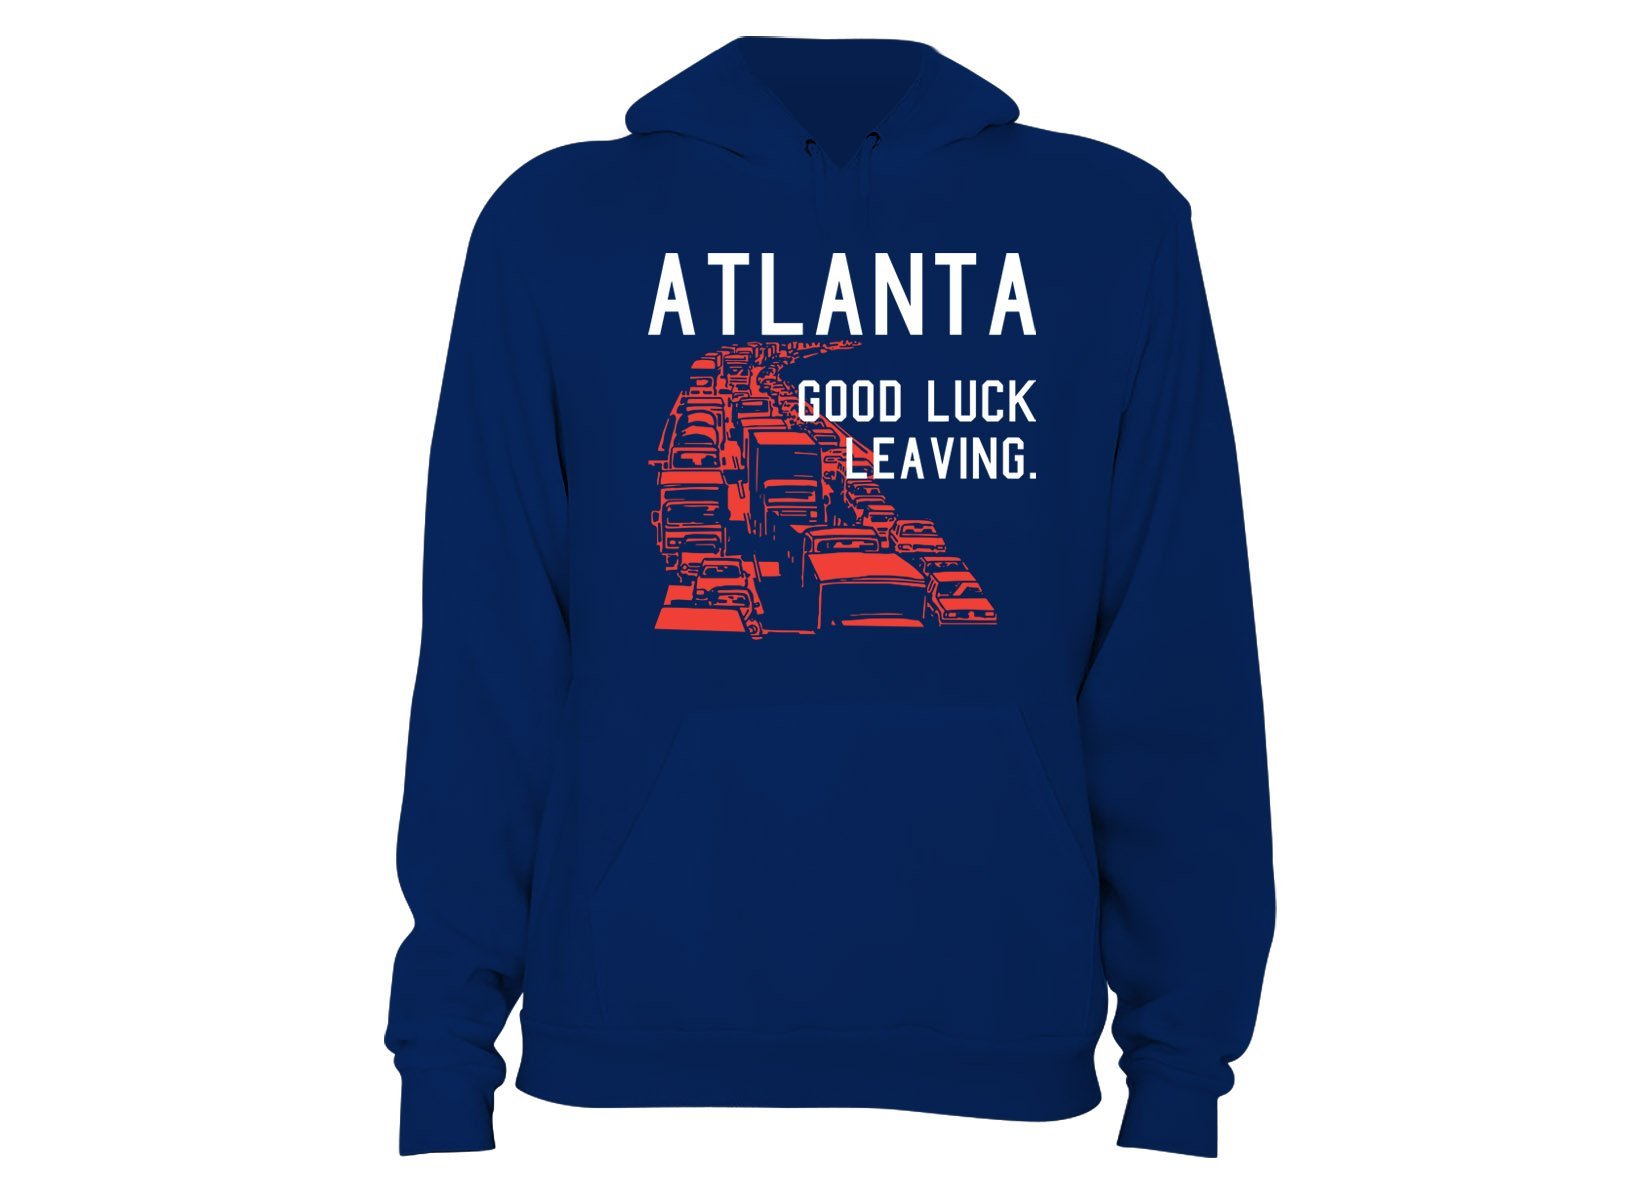 Atlanta, Good Luck Leaving. on Hoodie